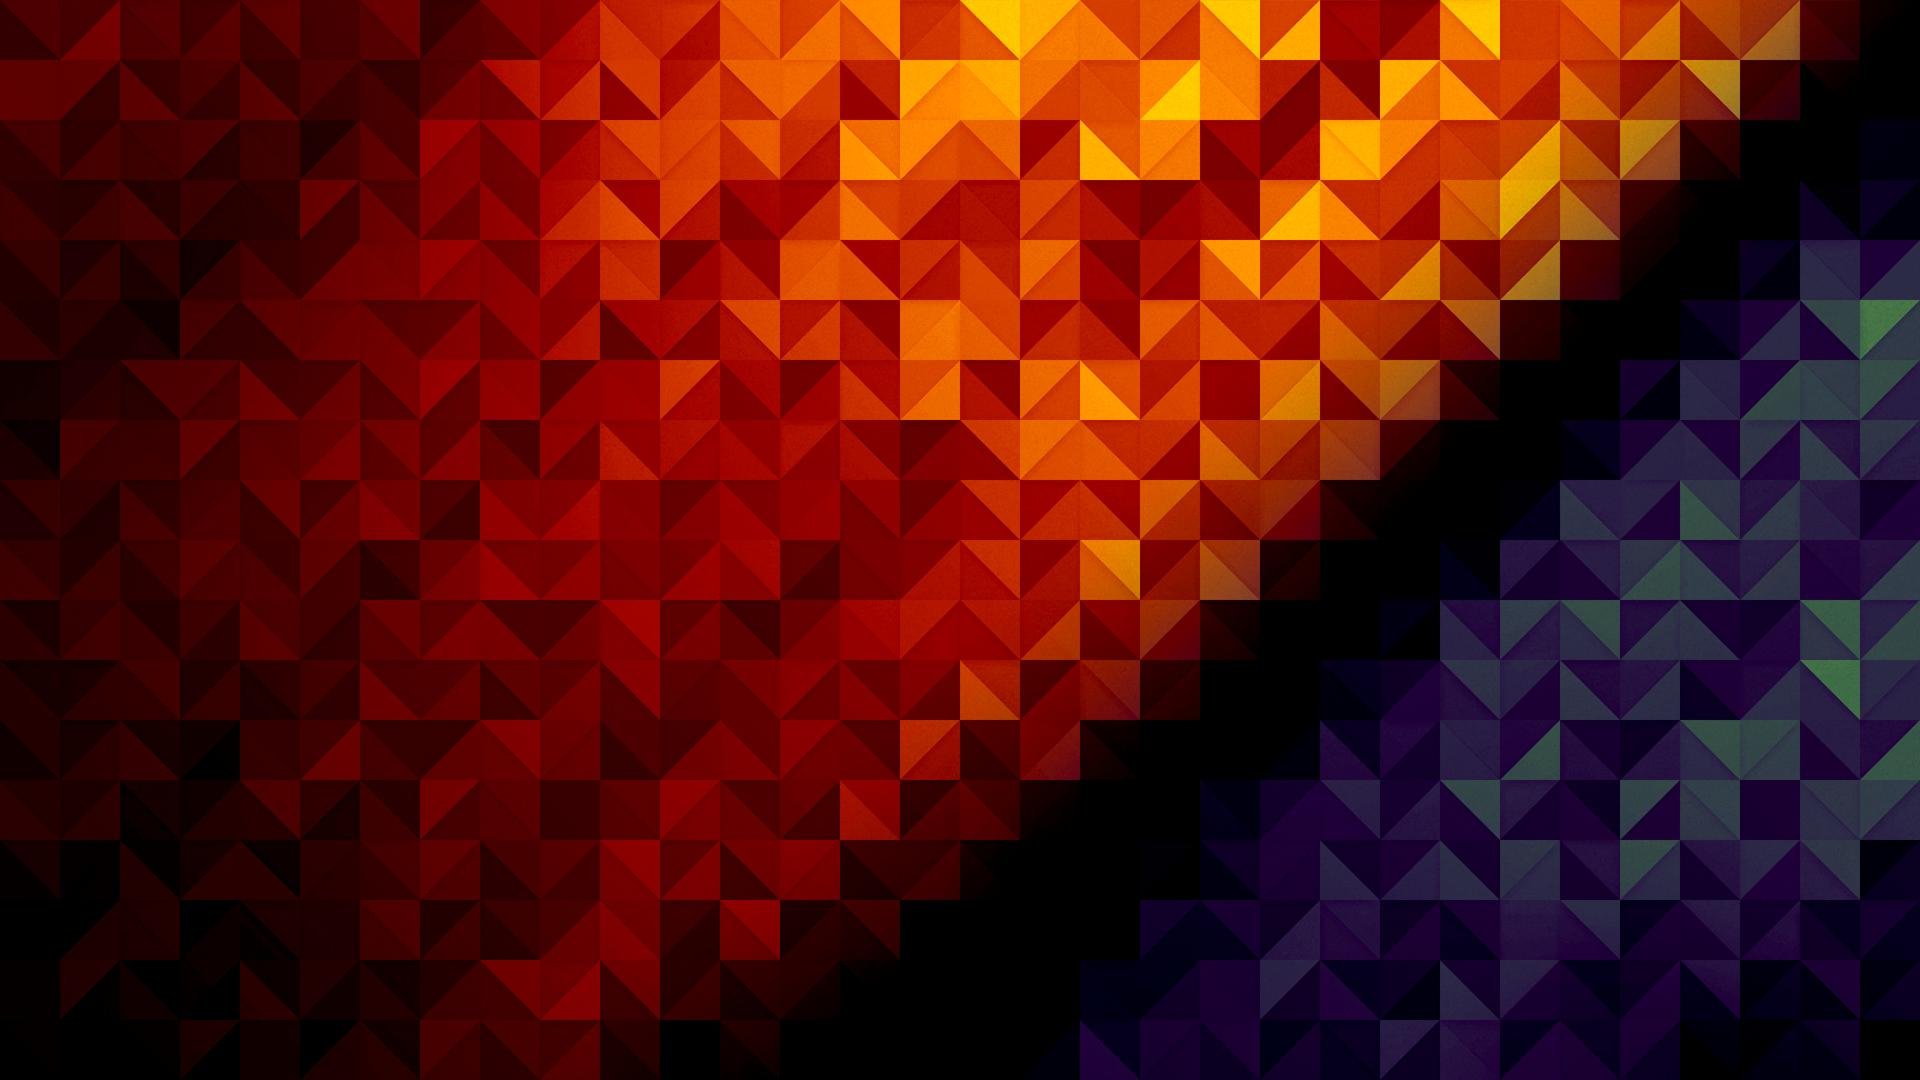 Abstract pattern wallpapers wallpaper cave for Wallpaper pattern